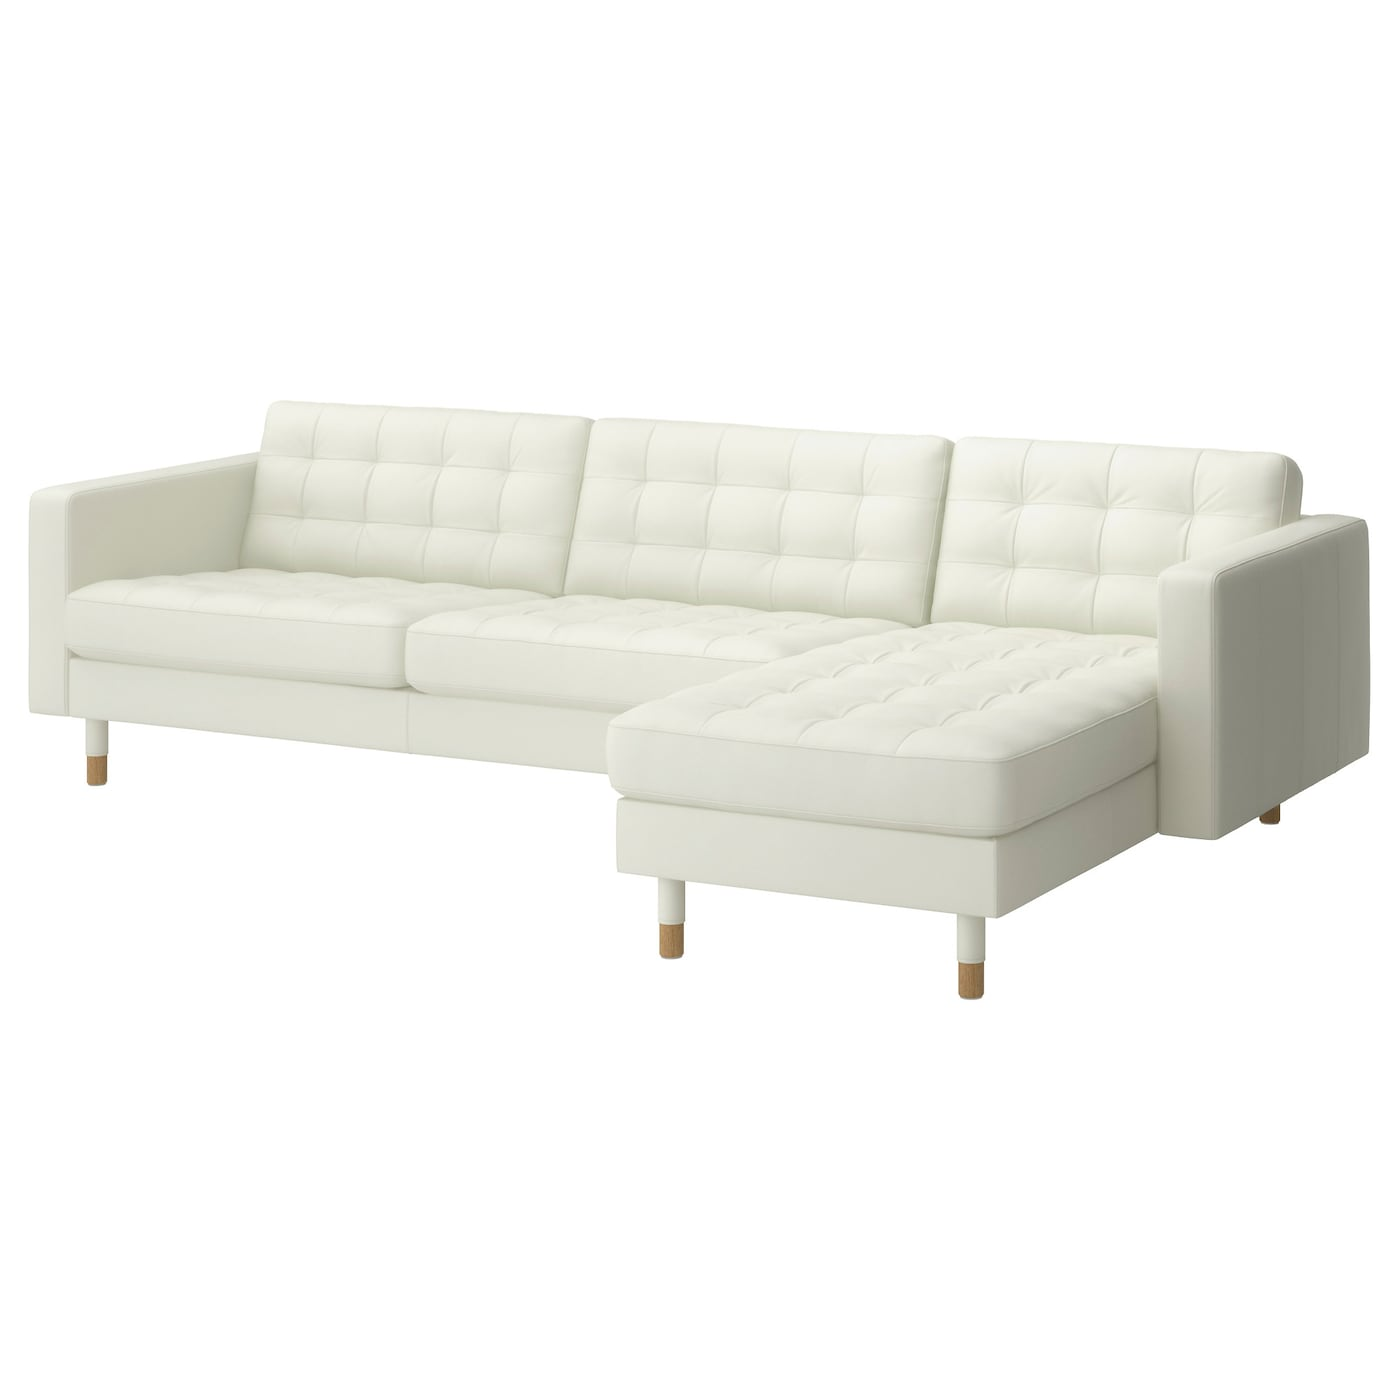 Landskrona 4 seat sofa with chaise longue grann bomstad for 4 seat sectional sofa chaise